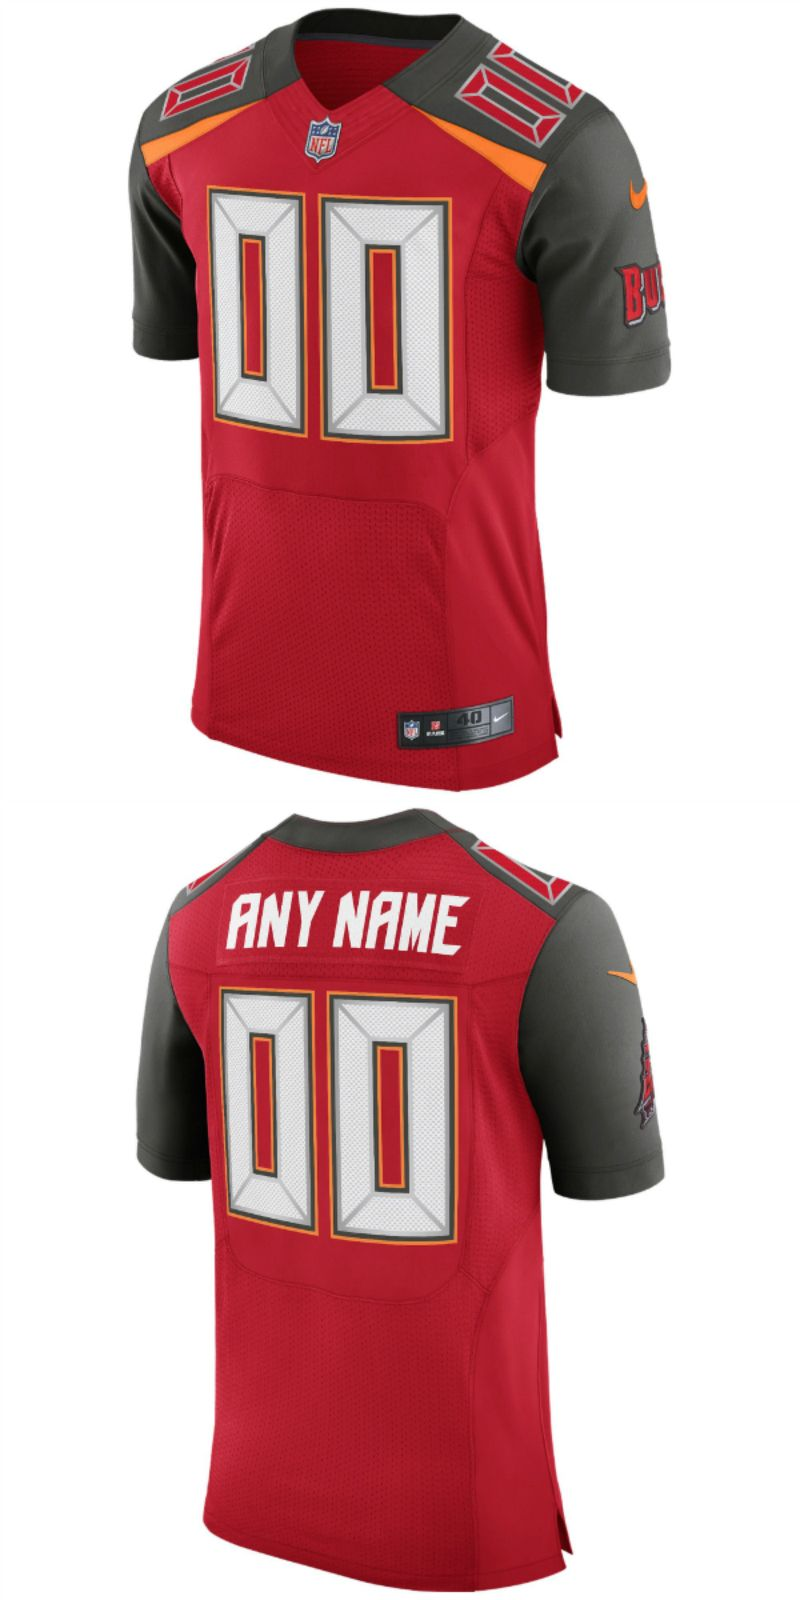 online store a0f76 eb2fe Tampa Bay Buccaneers William Gholston NFL Pro Line Red Team ...